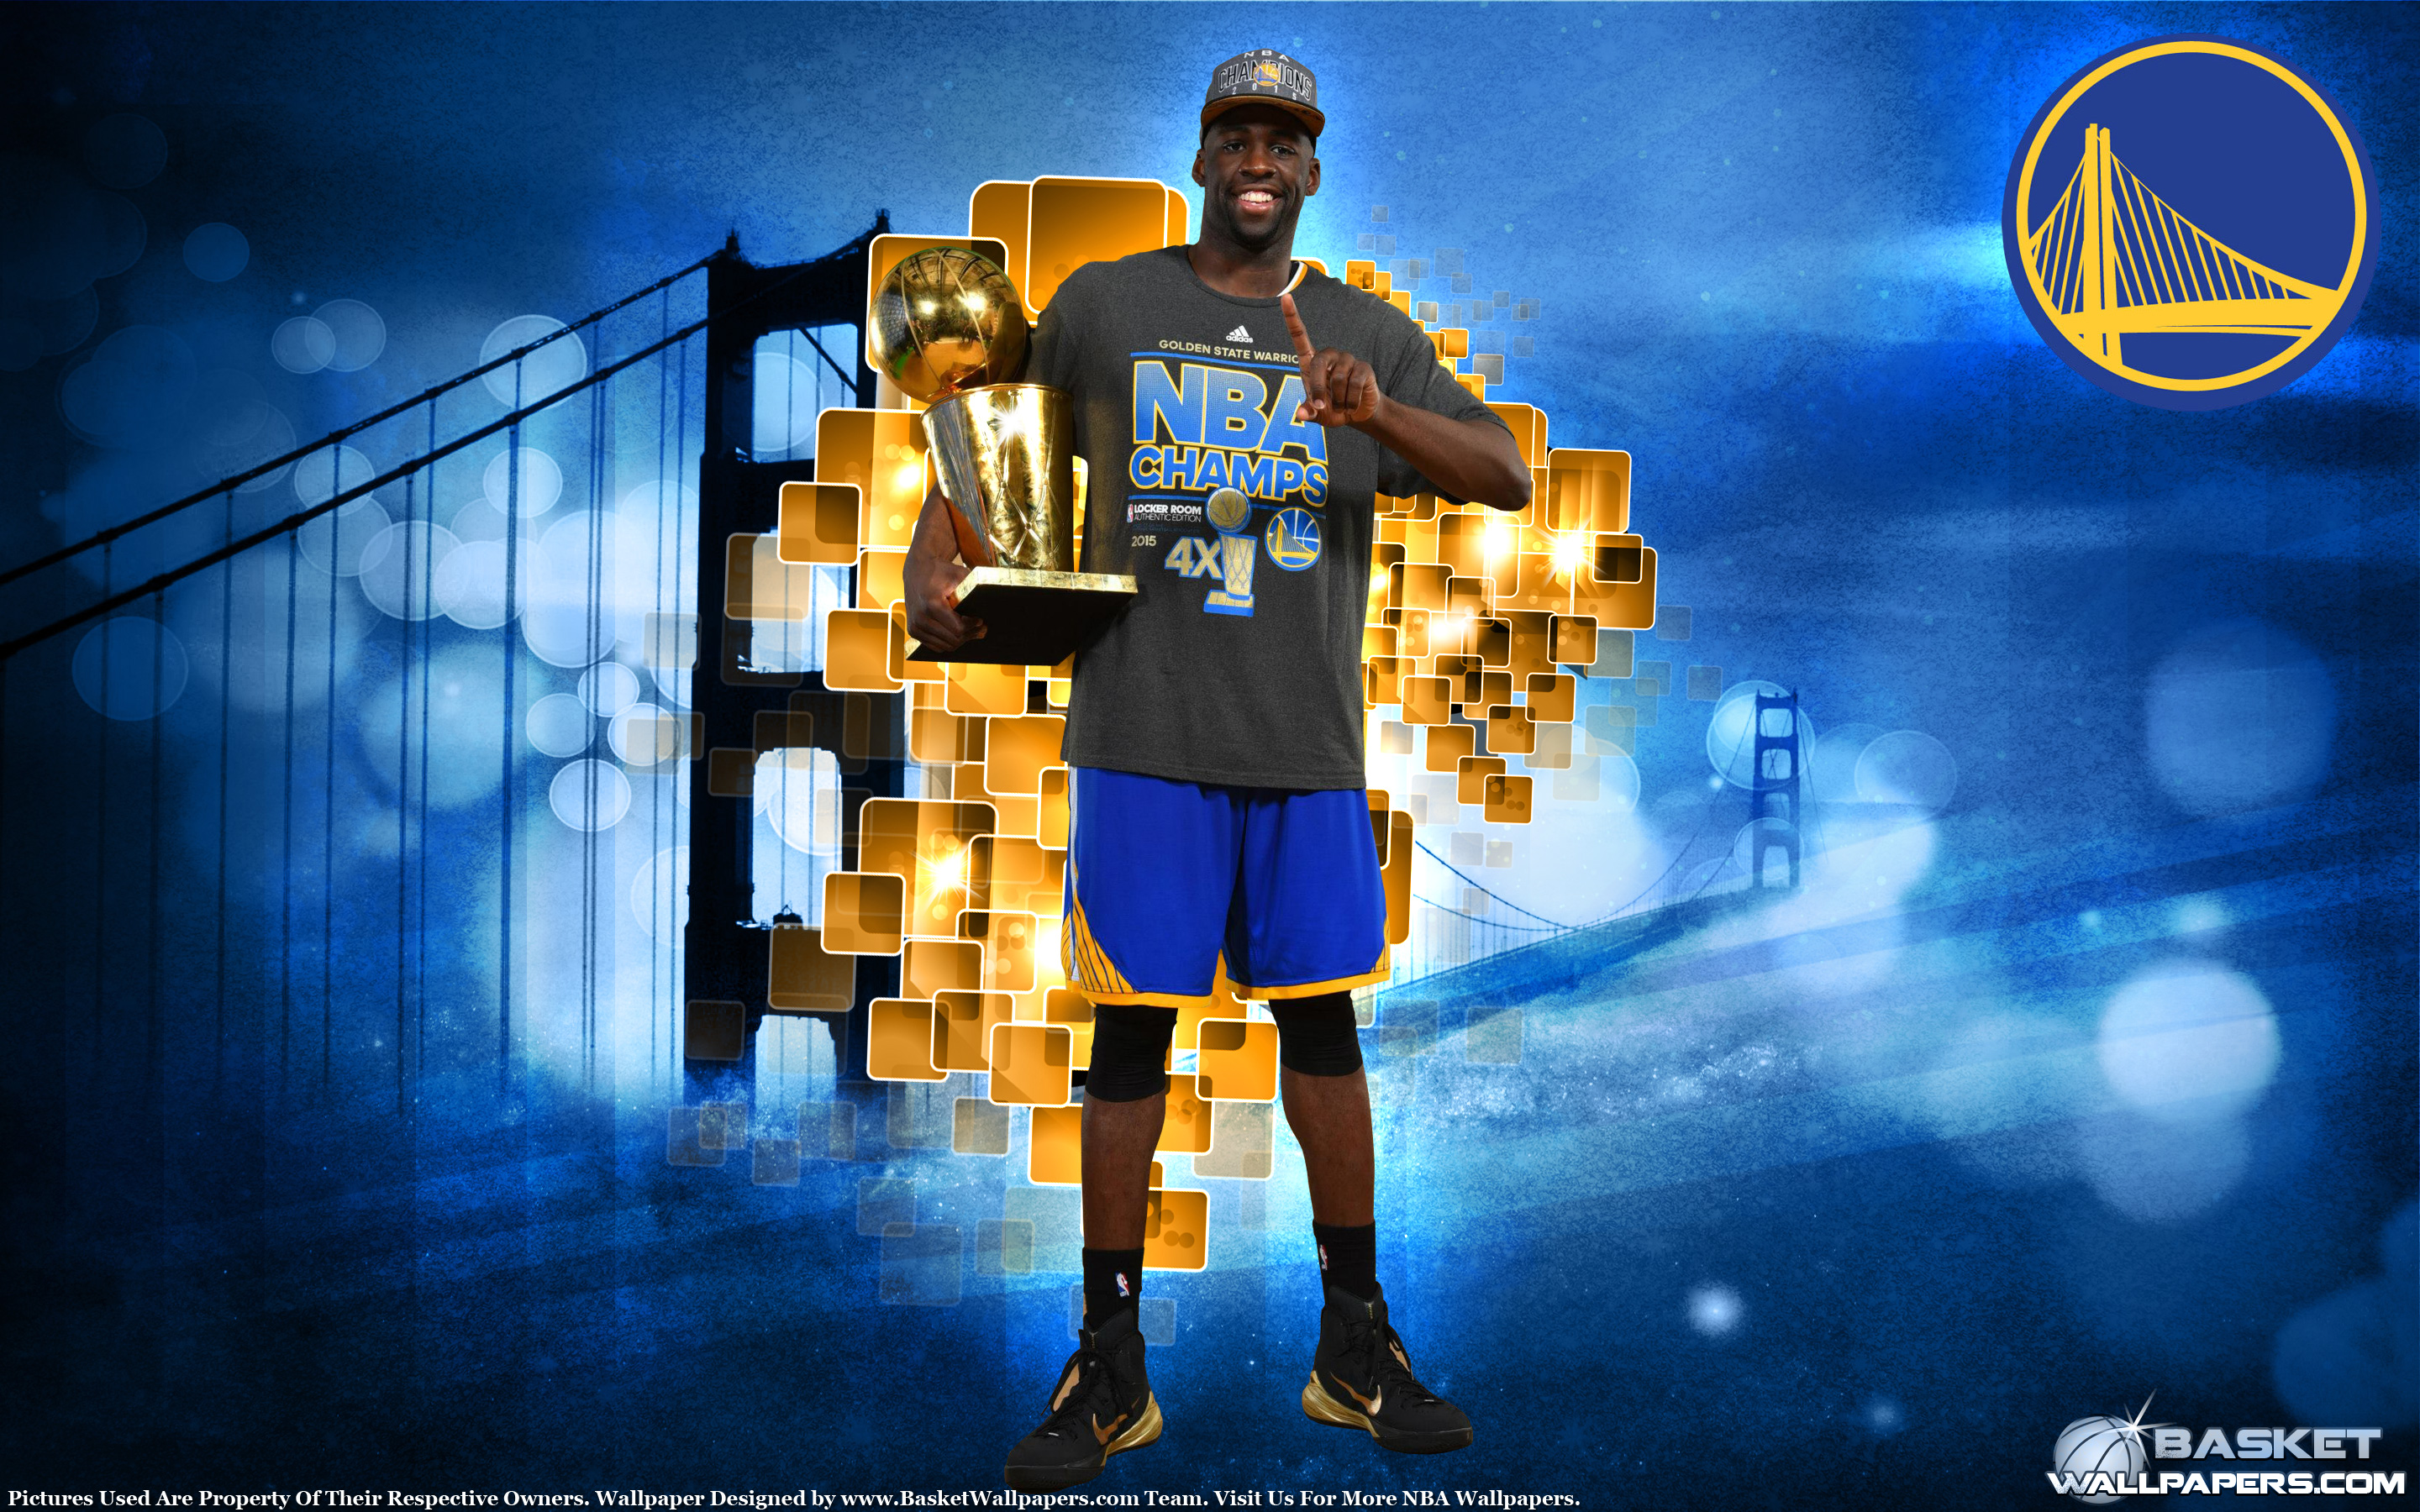 Draymond Green 2015 NBA Champion Wallpaper